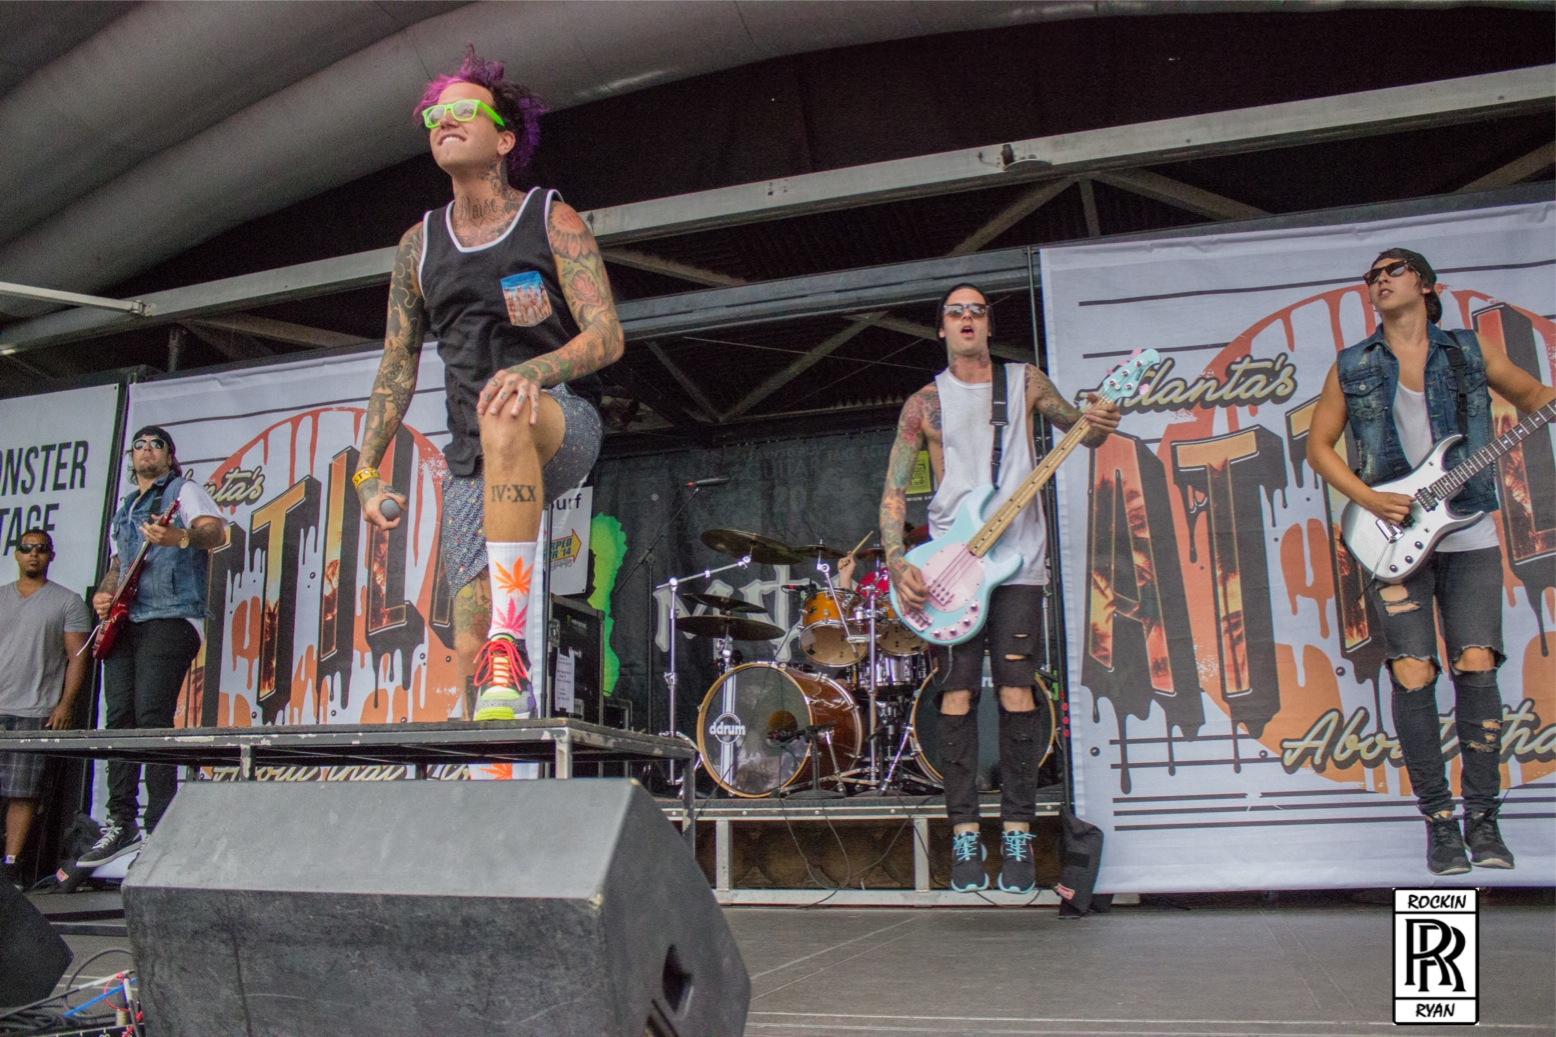 7b11b4bb2b Attila has been a crowd favorite at Warped Tour - Music Junkie Press